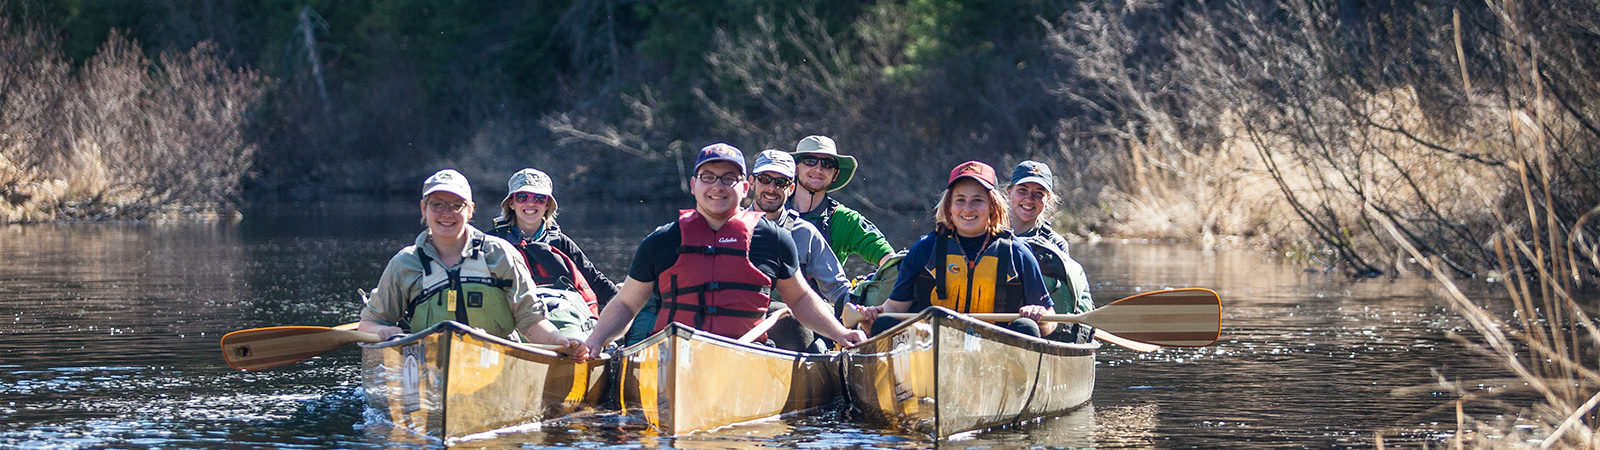 Northland students in canoes